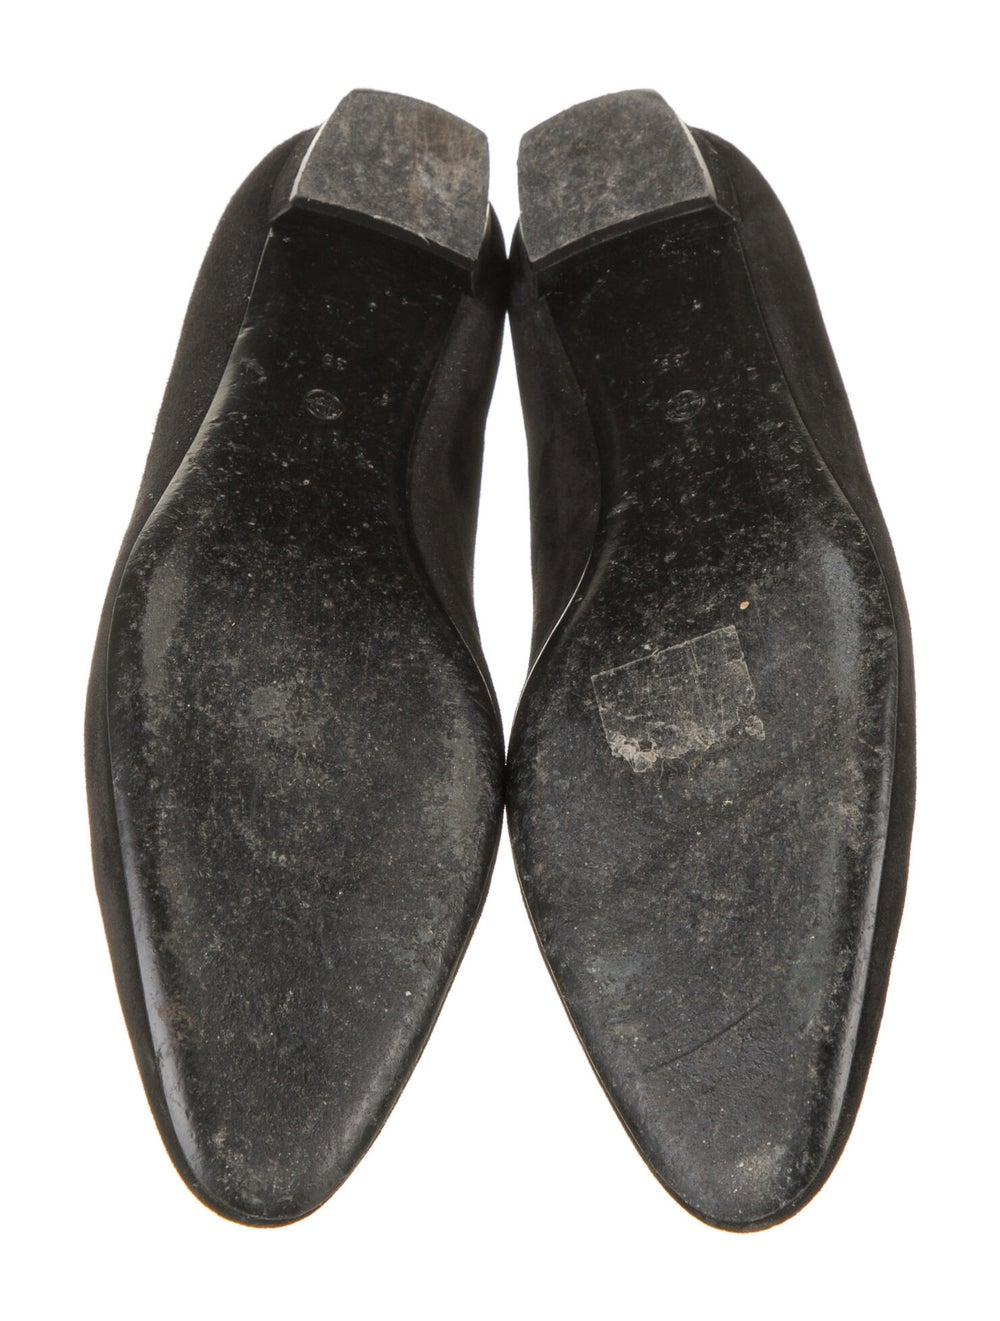 The Row Suede Flats Black - image 5